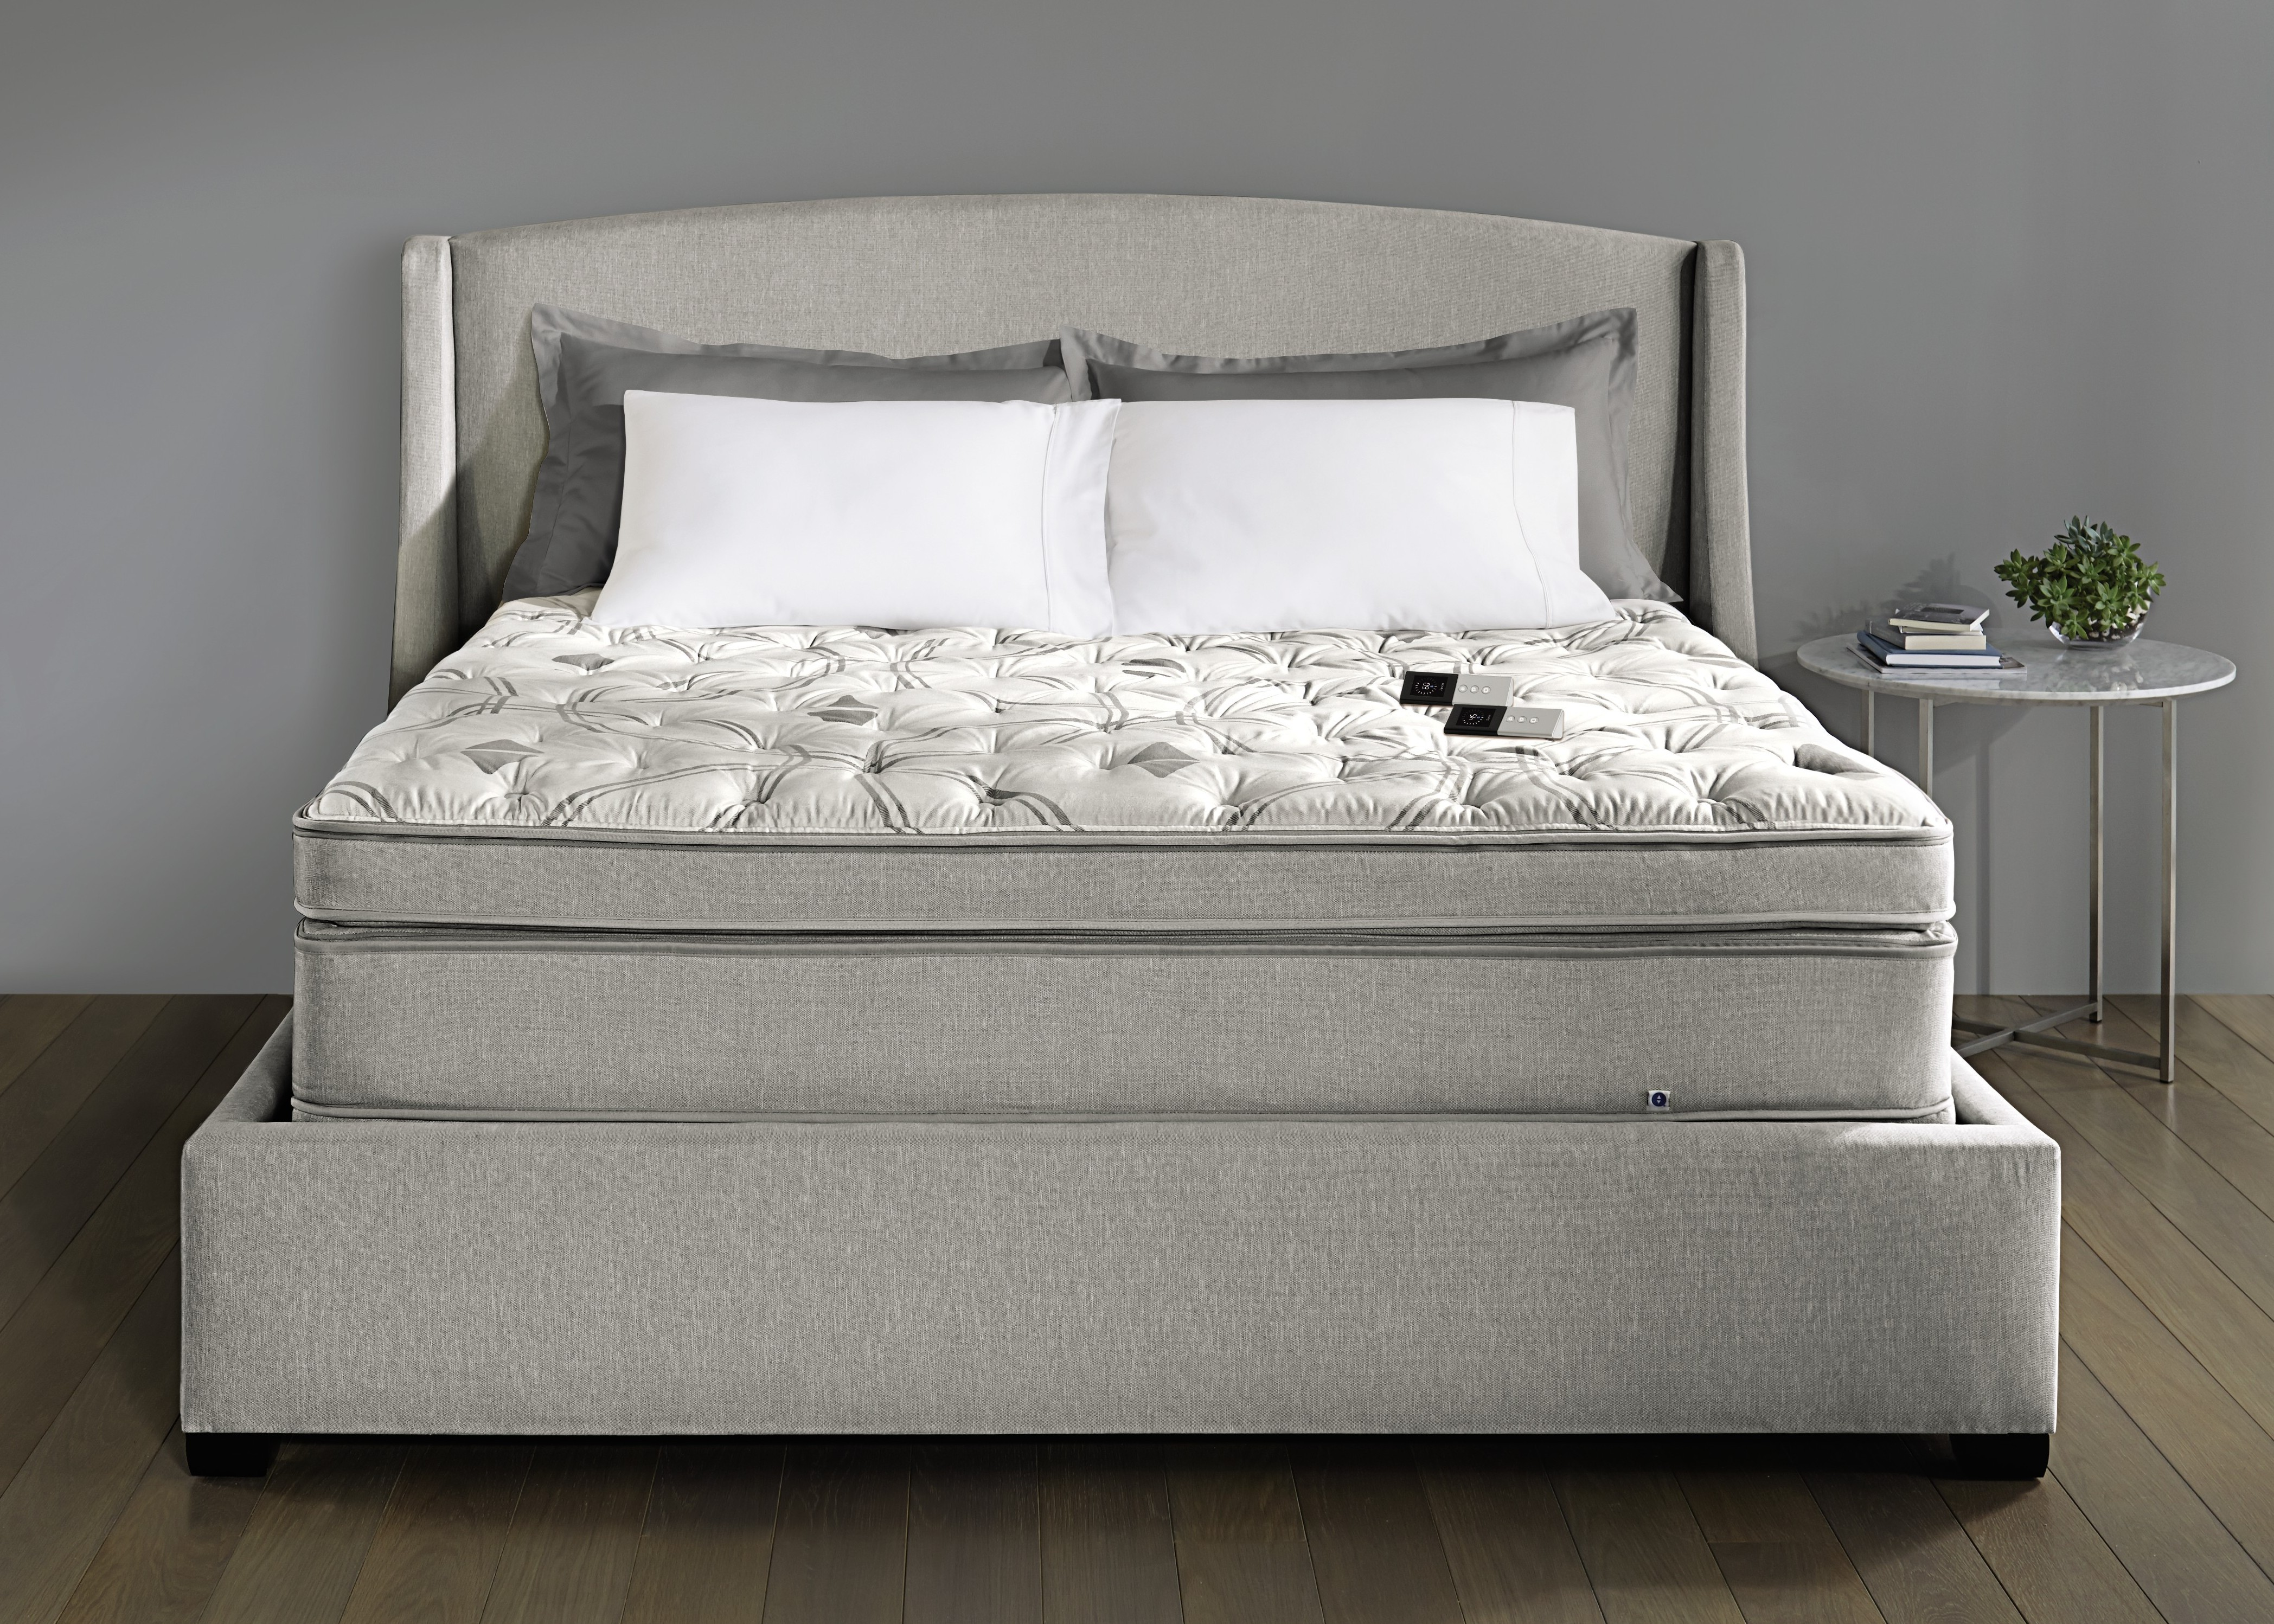 Sleep Number Introduces Advanced Dualair Technology In